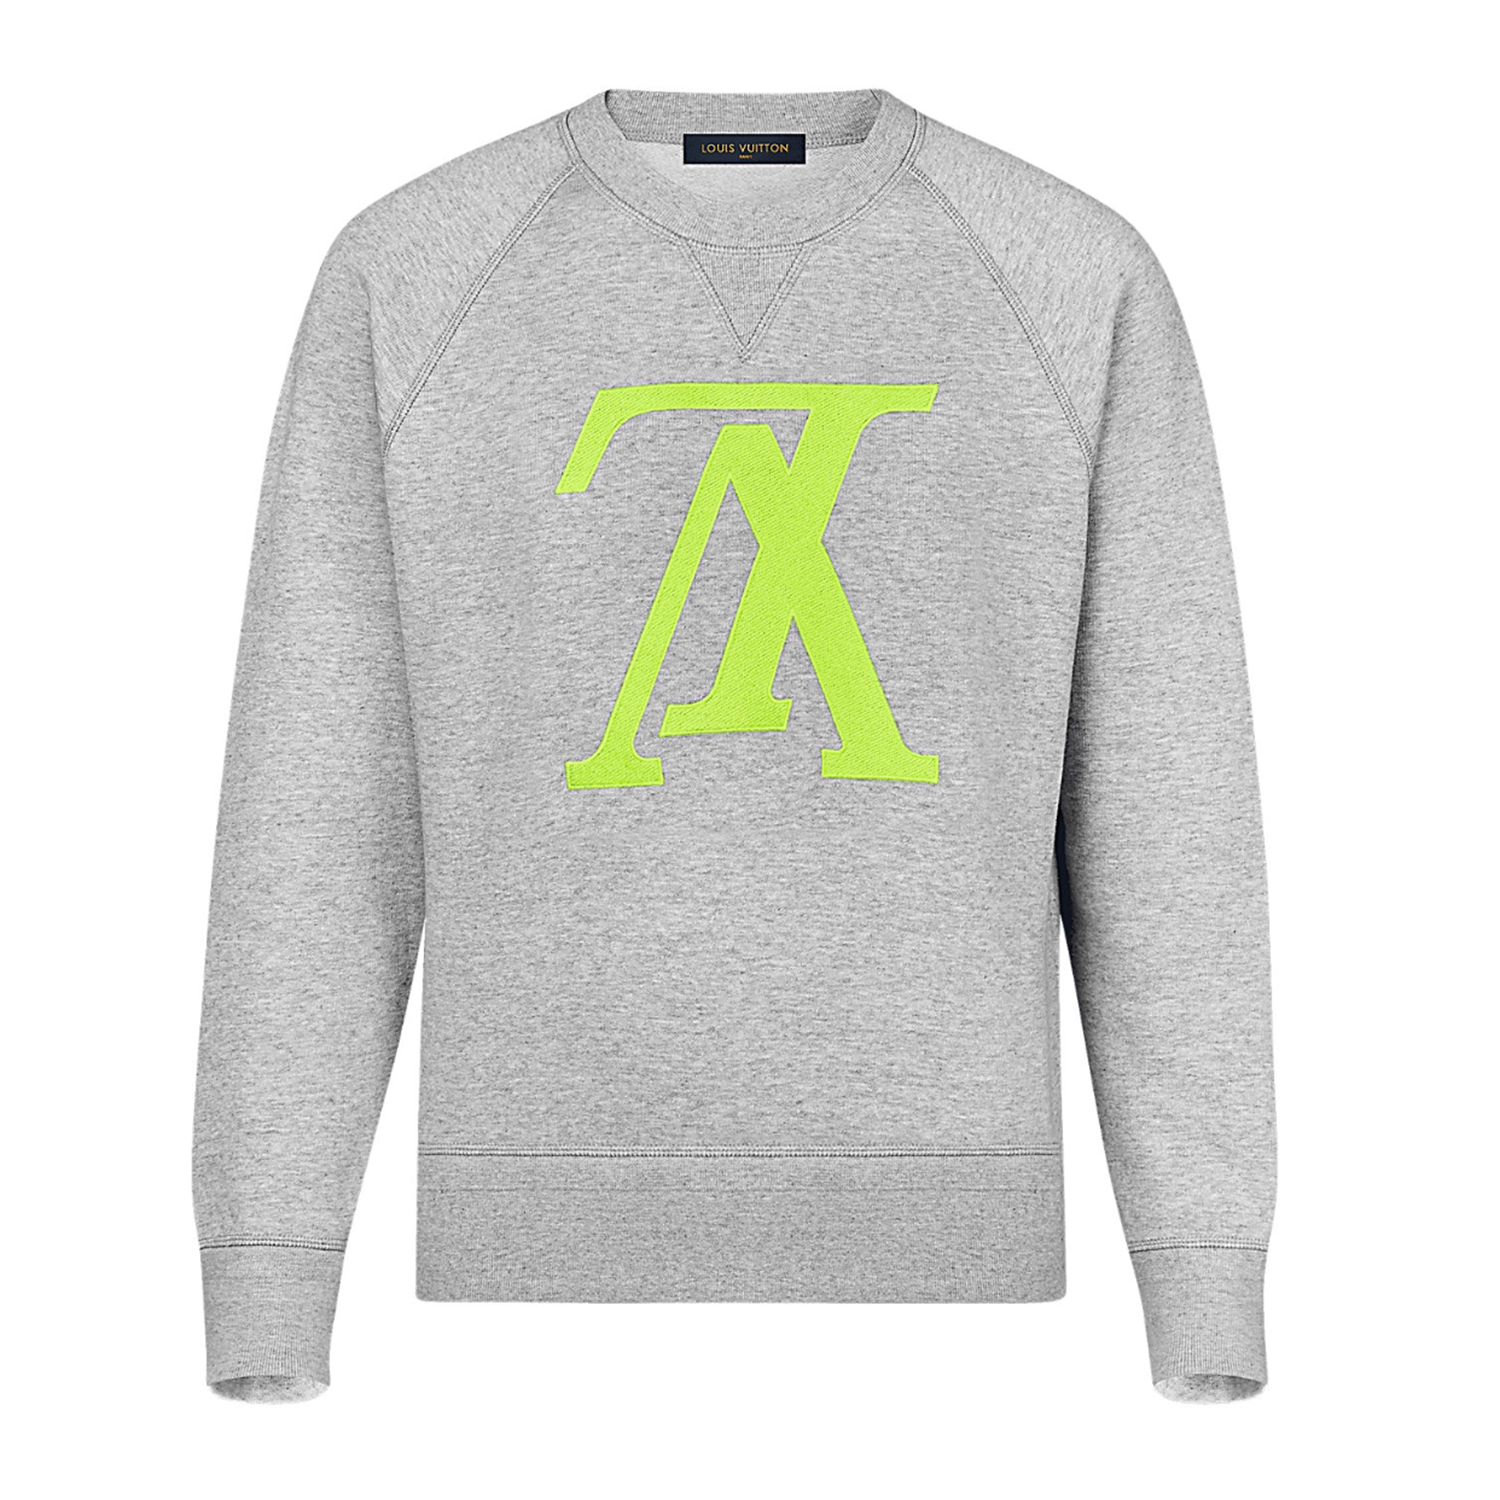 UPSIDE DOWN LV SWEATSHIRT - €690 $9951A46ZDNEON YELLOW